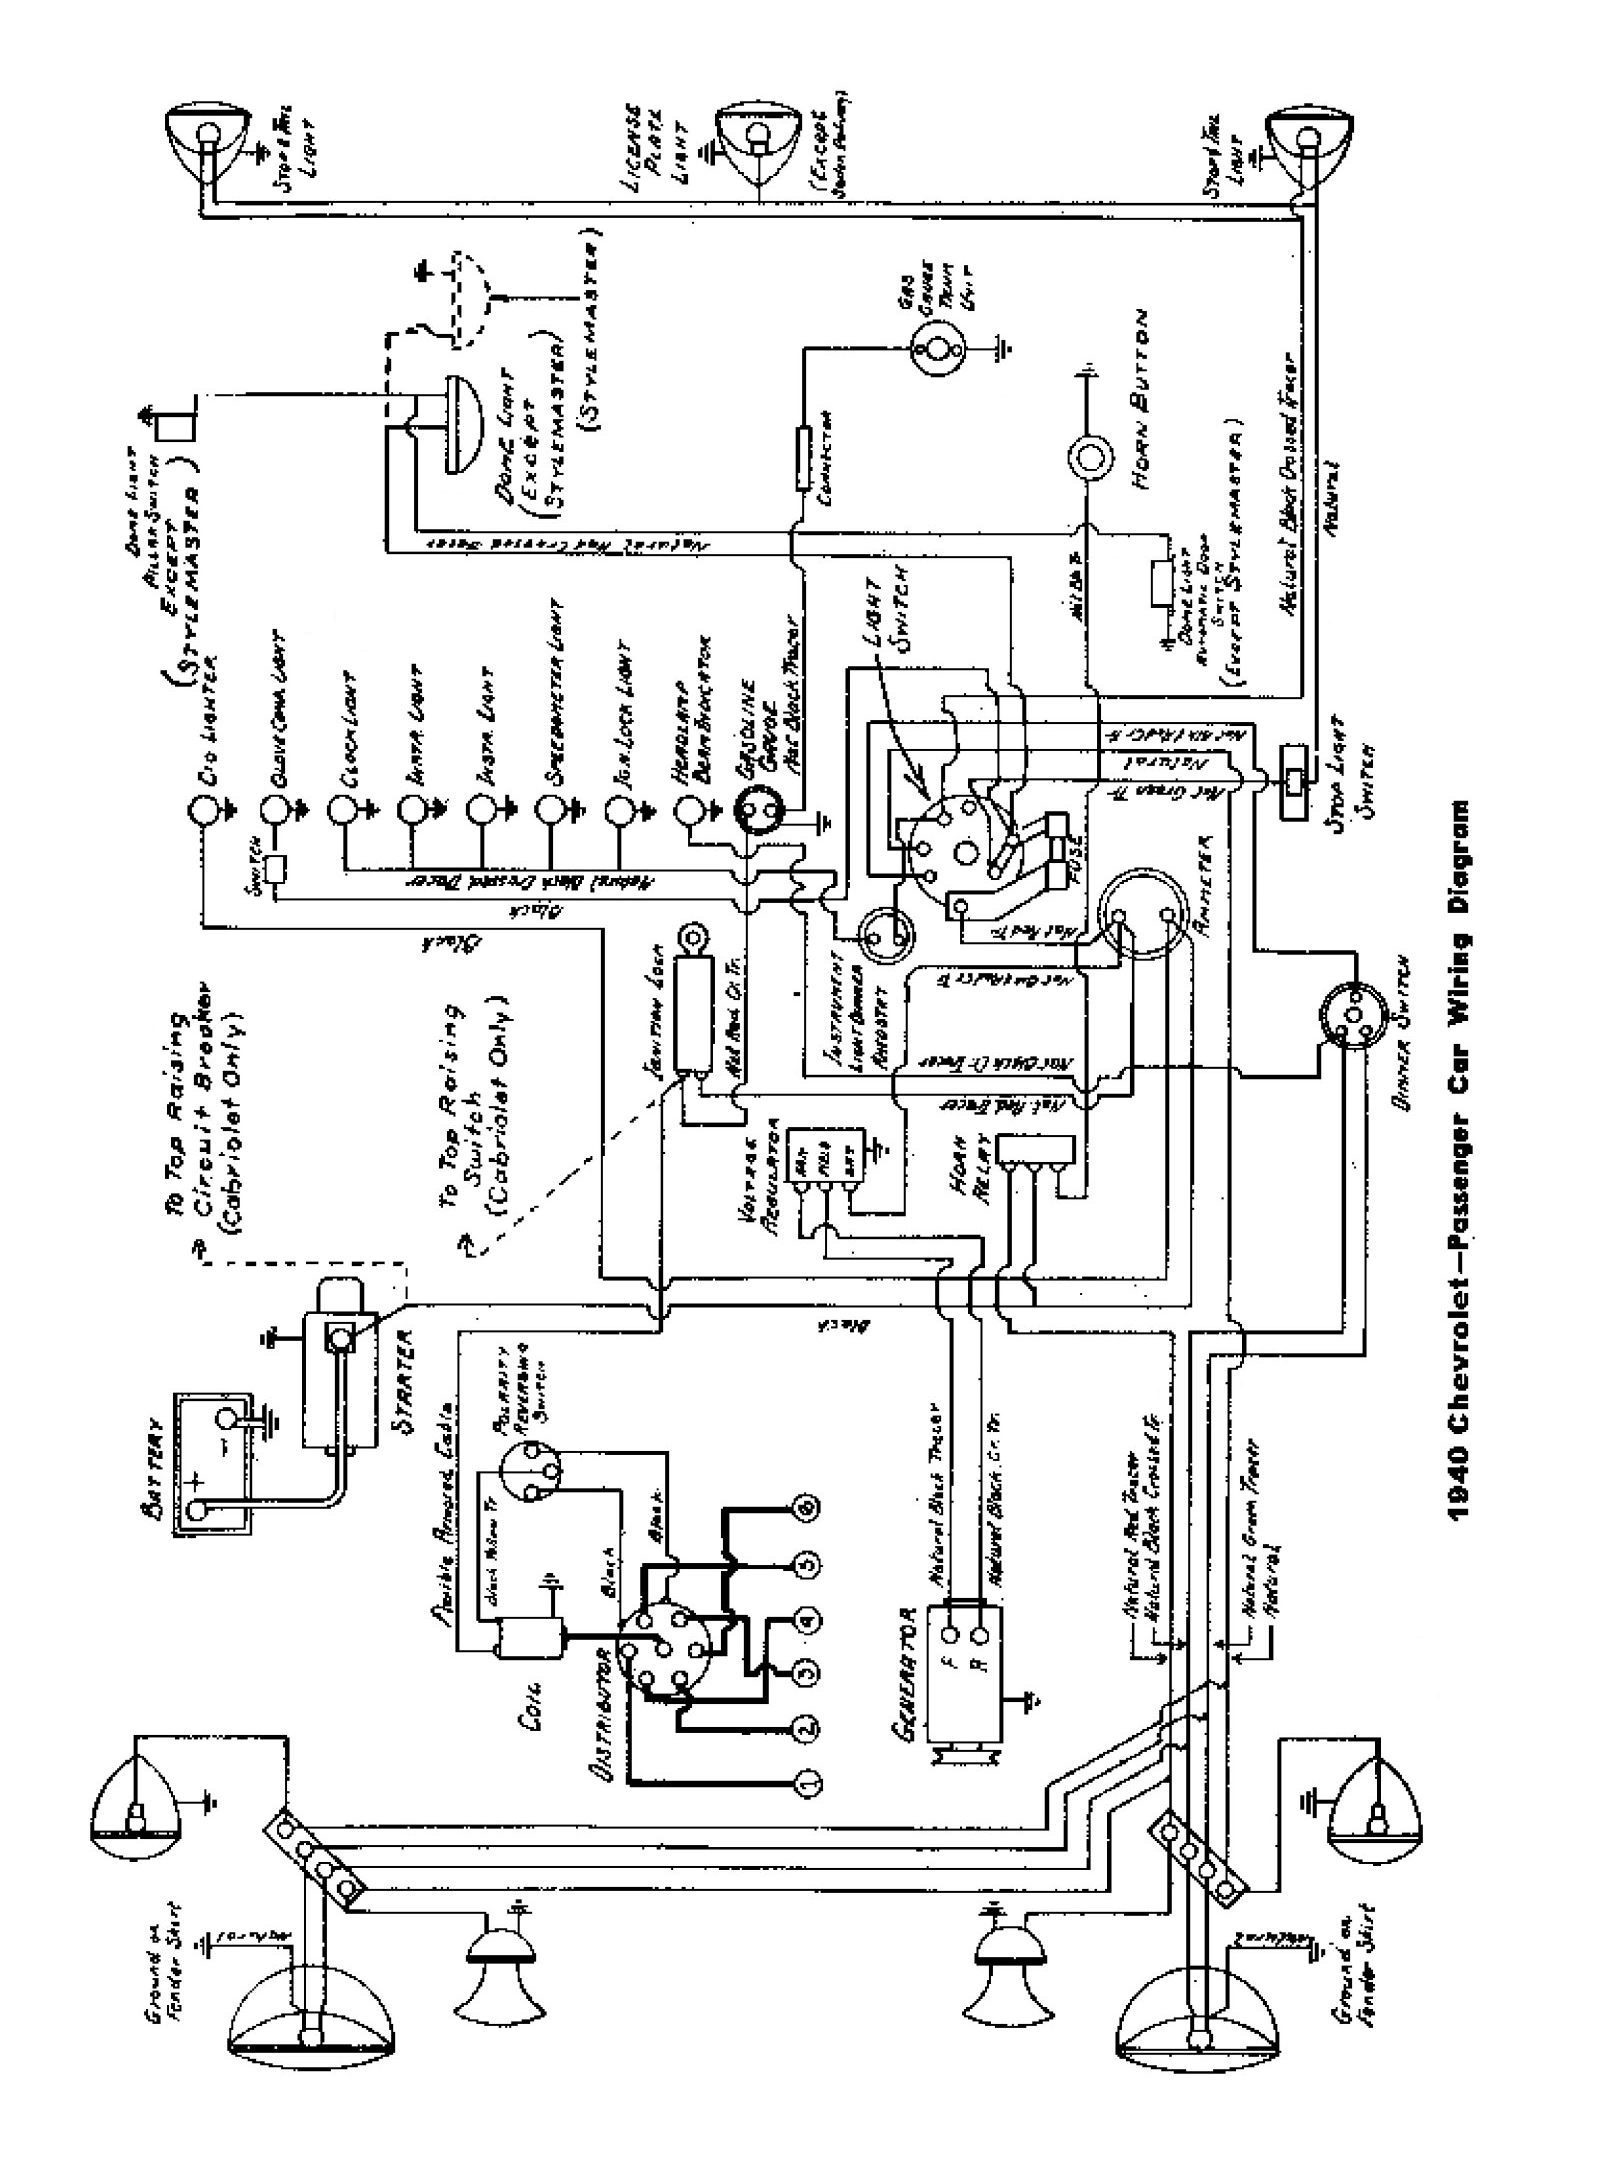 Old Fashioned Fiero Wiring Diagram Gift - Best Images for wiring ...